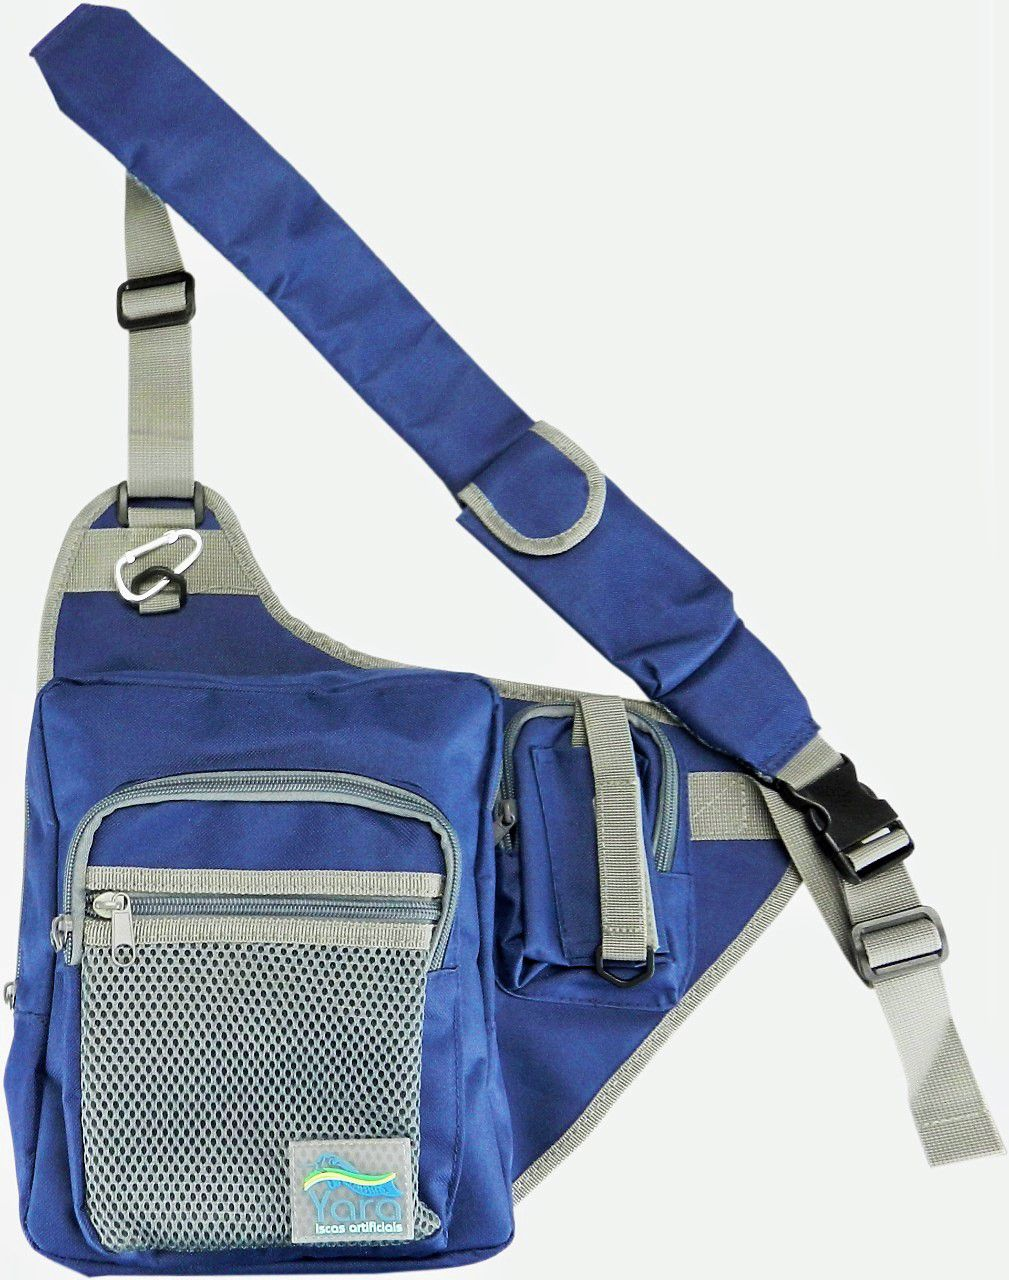 Bolsa Porta Iscas Artificiais Fishing Bag Cor Azul Yara